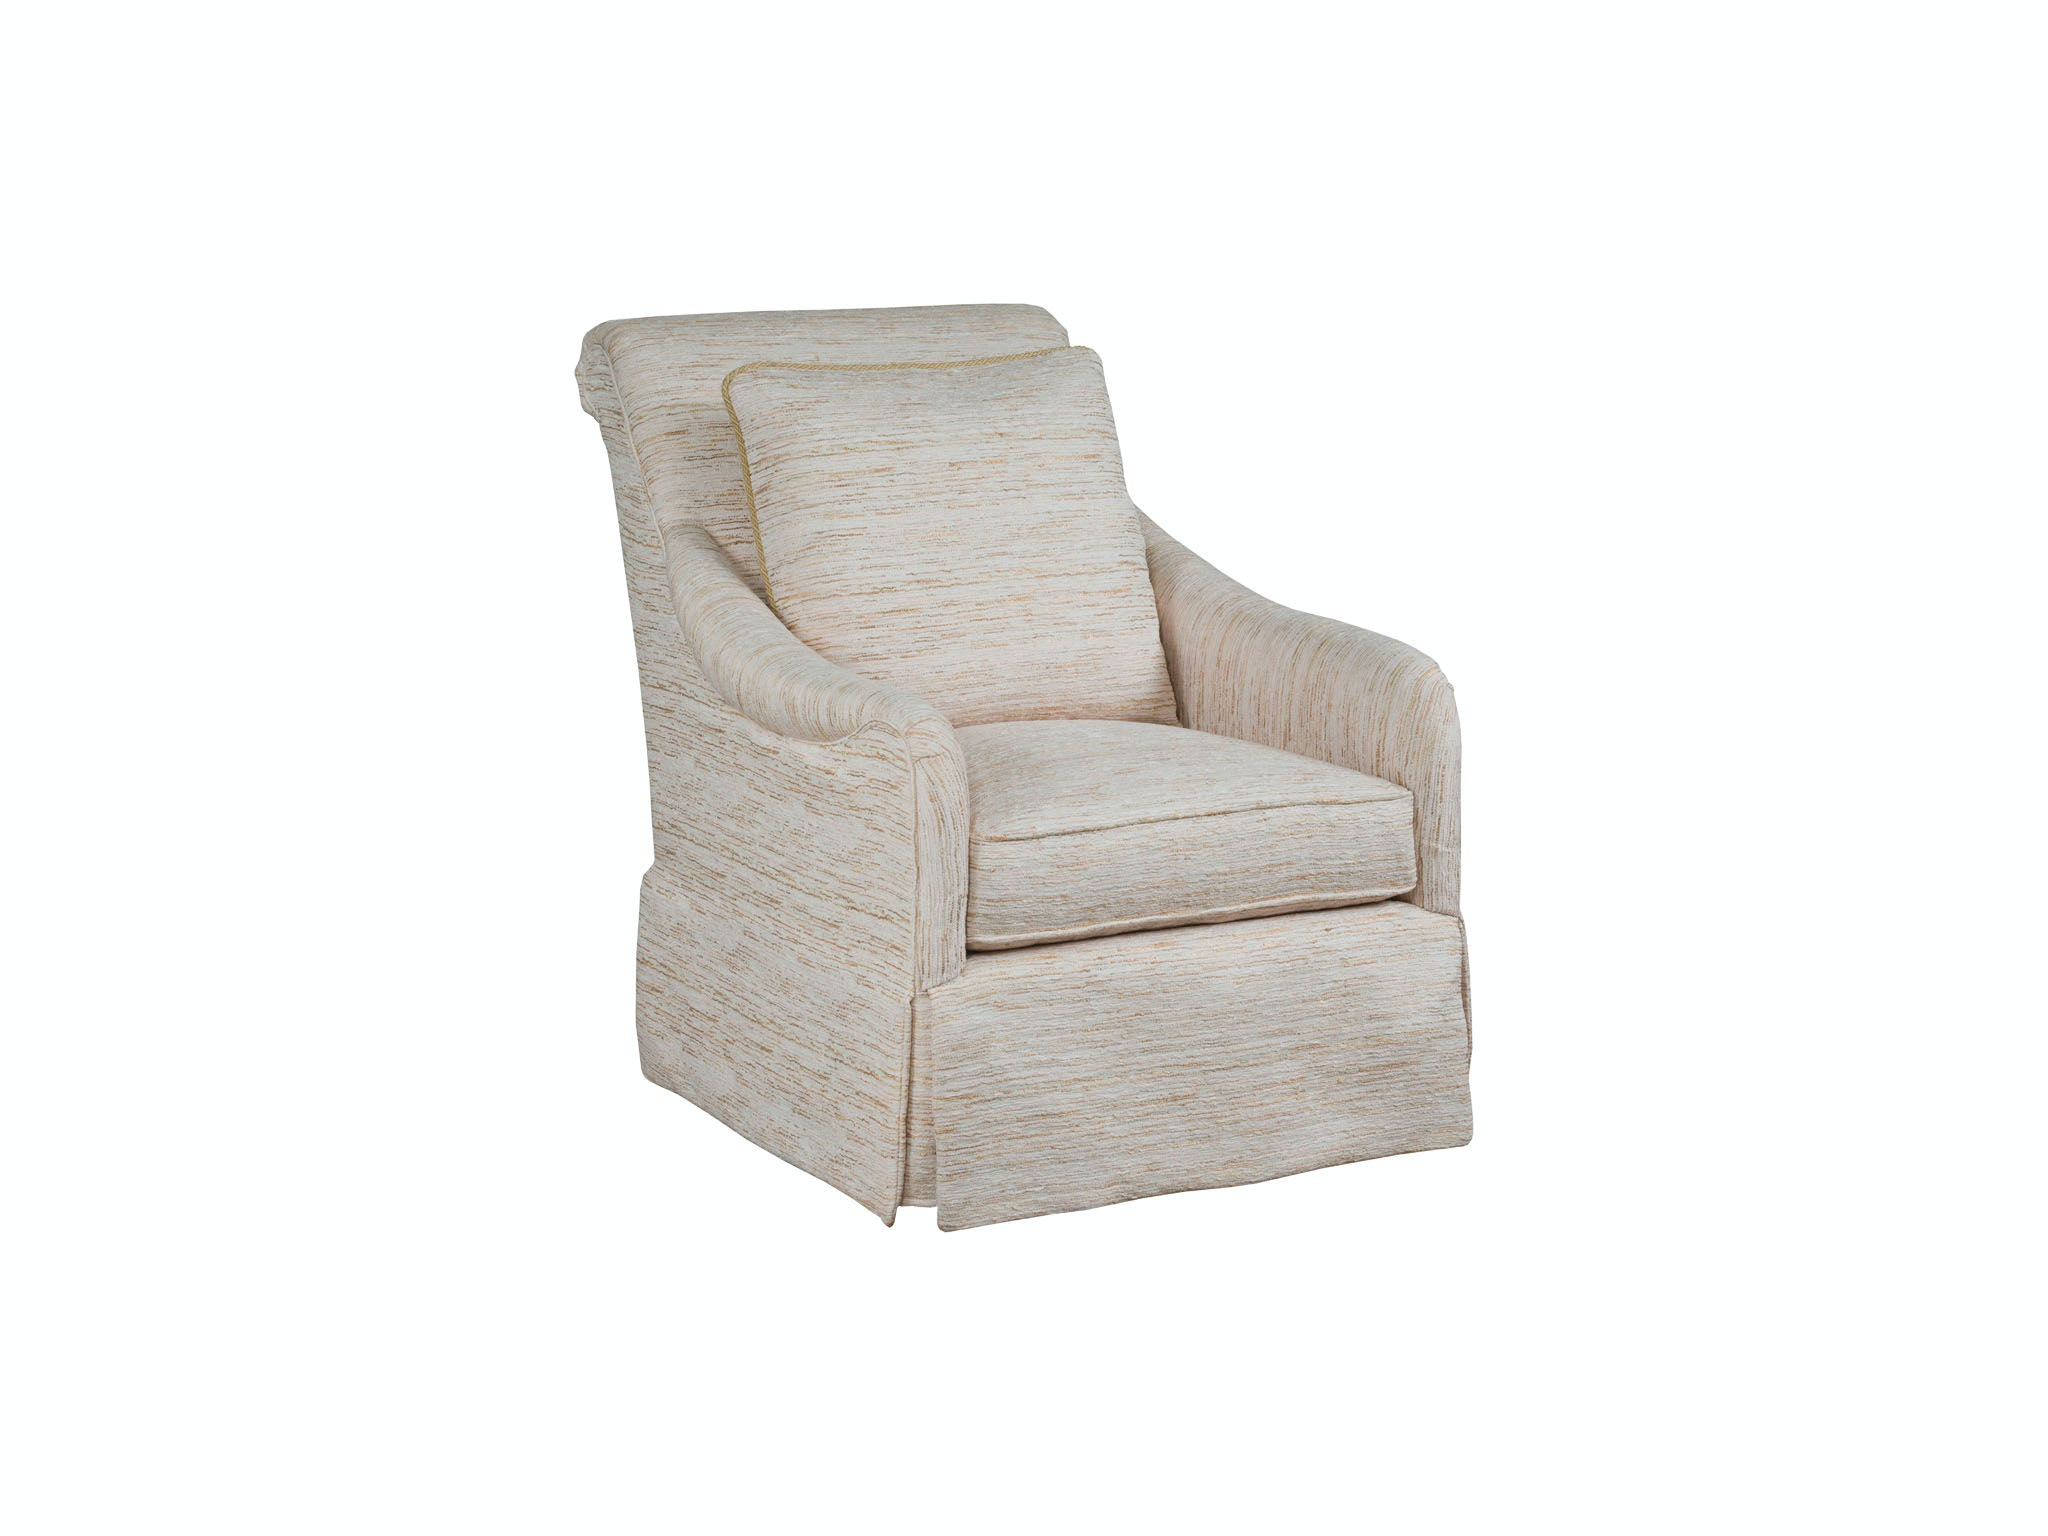 Awesome Kincaid Furniture Jocelyn Swivel Glider Chair 016 02 Amazing Design